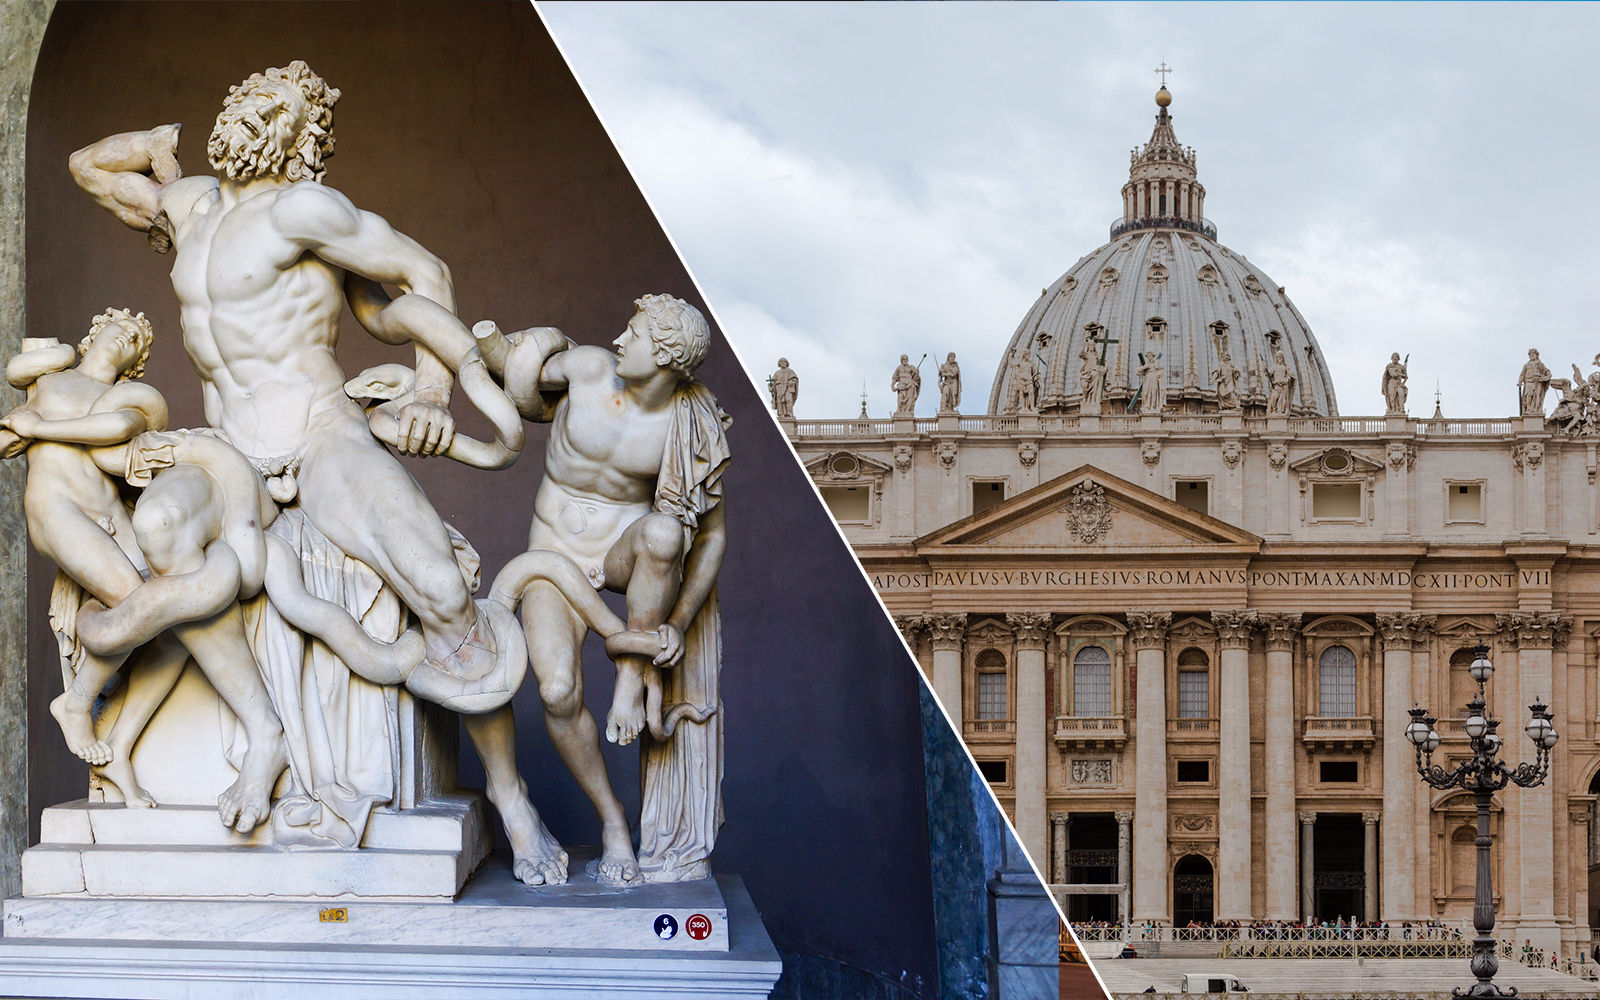 88a098fc 58bd 4742 88b2 6b84e2905adb 7968 rome early access group tour to vatican museum and sistine chapel 01